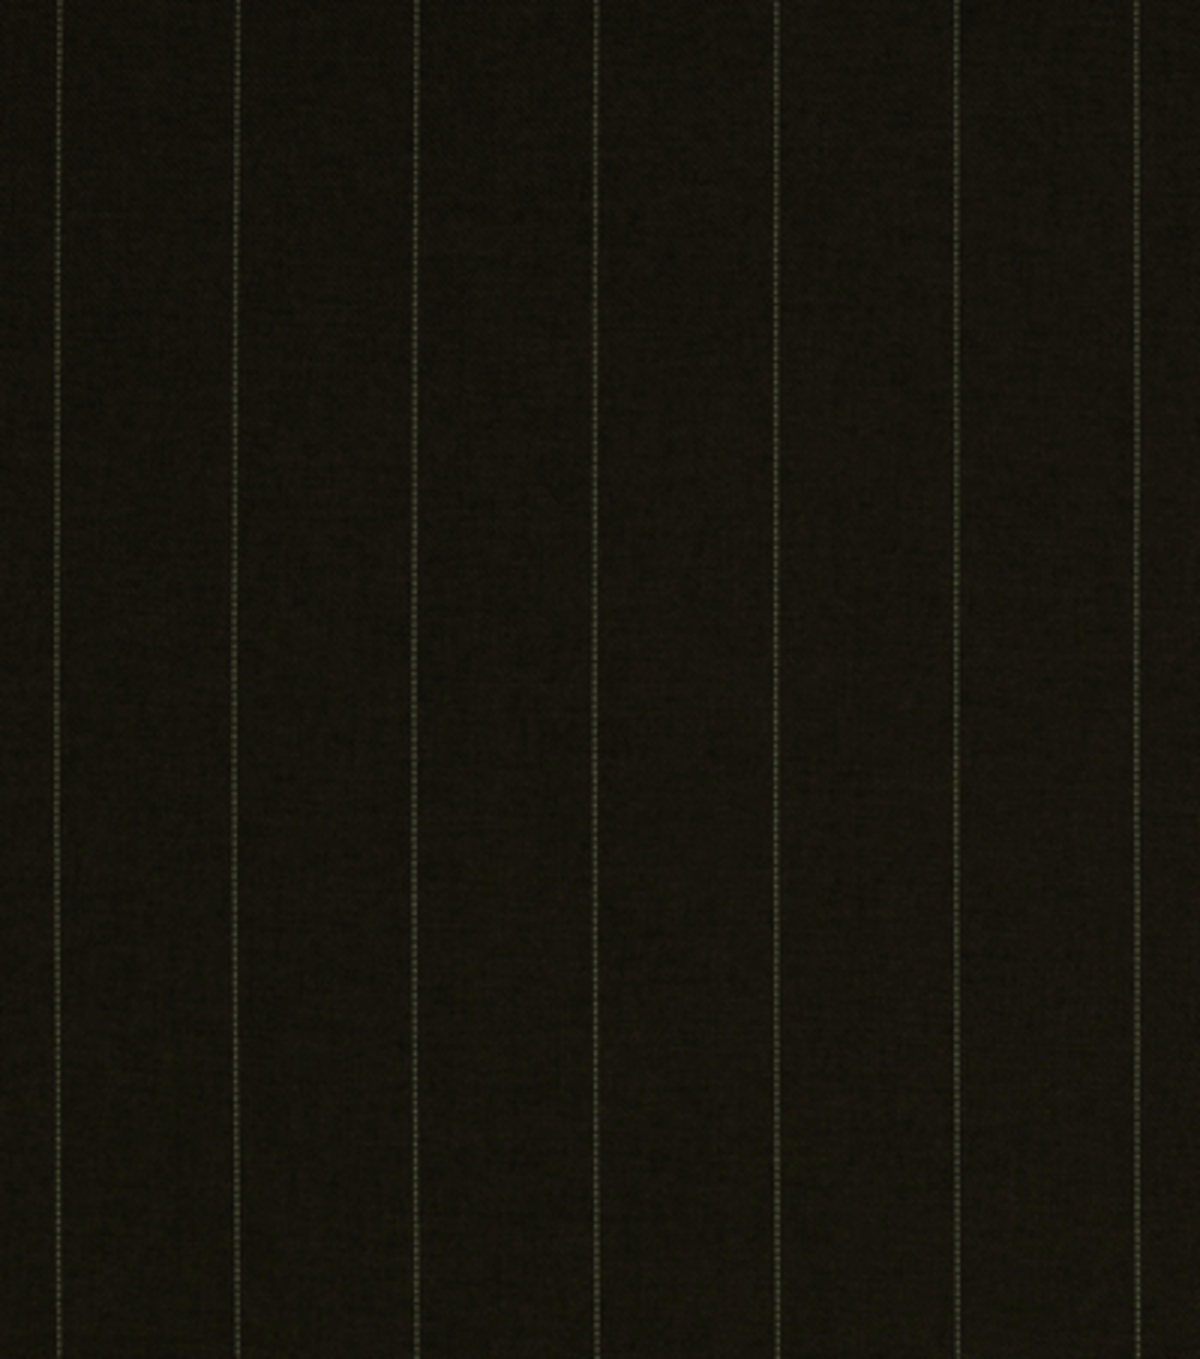 Home Decor 8\u0022x8\u0022 Fabric Swatch-Covington Armani 663 Expresso